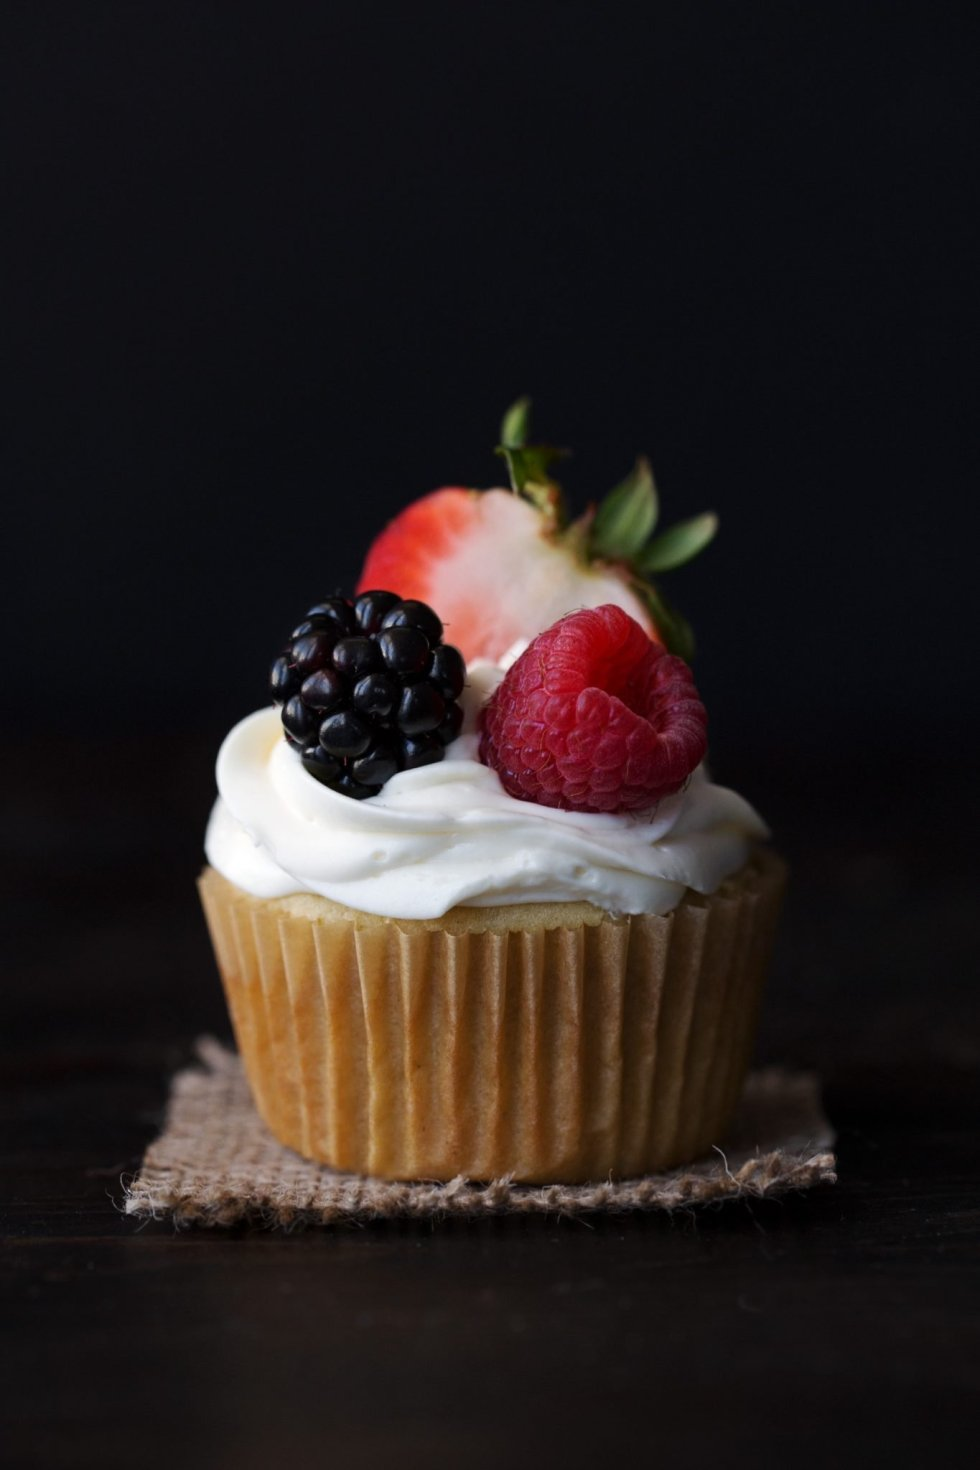 Berry Filled Vanilla Cupcakes with Lemon Cream Frosting